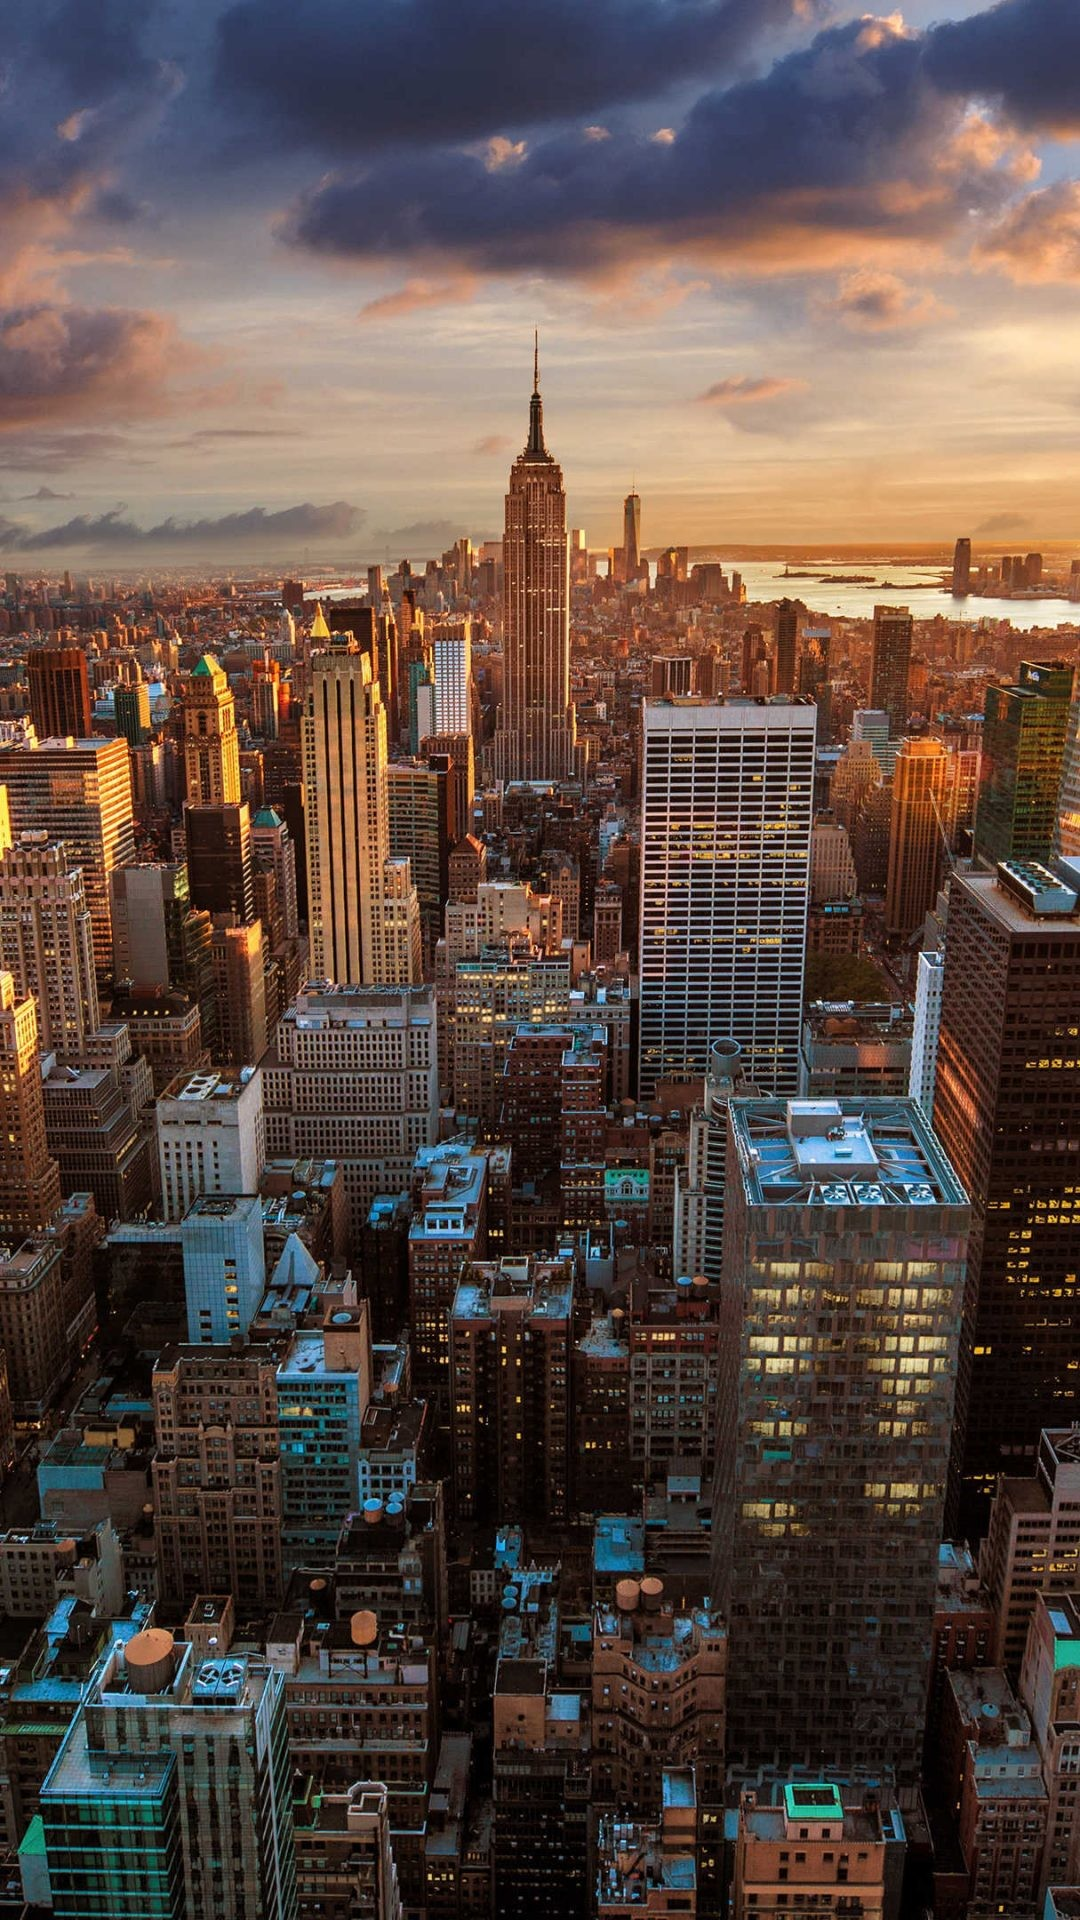 New York City 4K Wallpaper (38+ images)